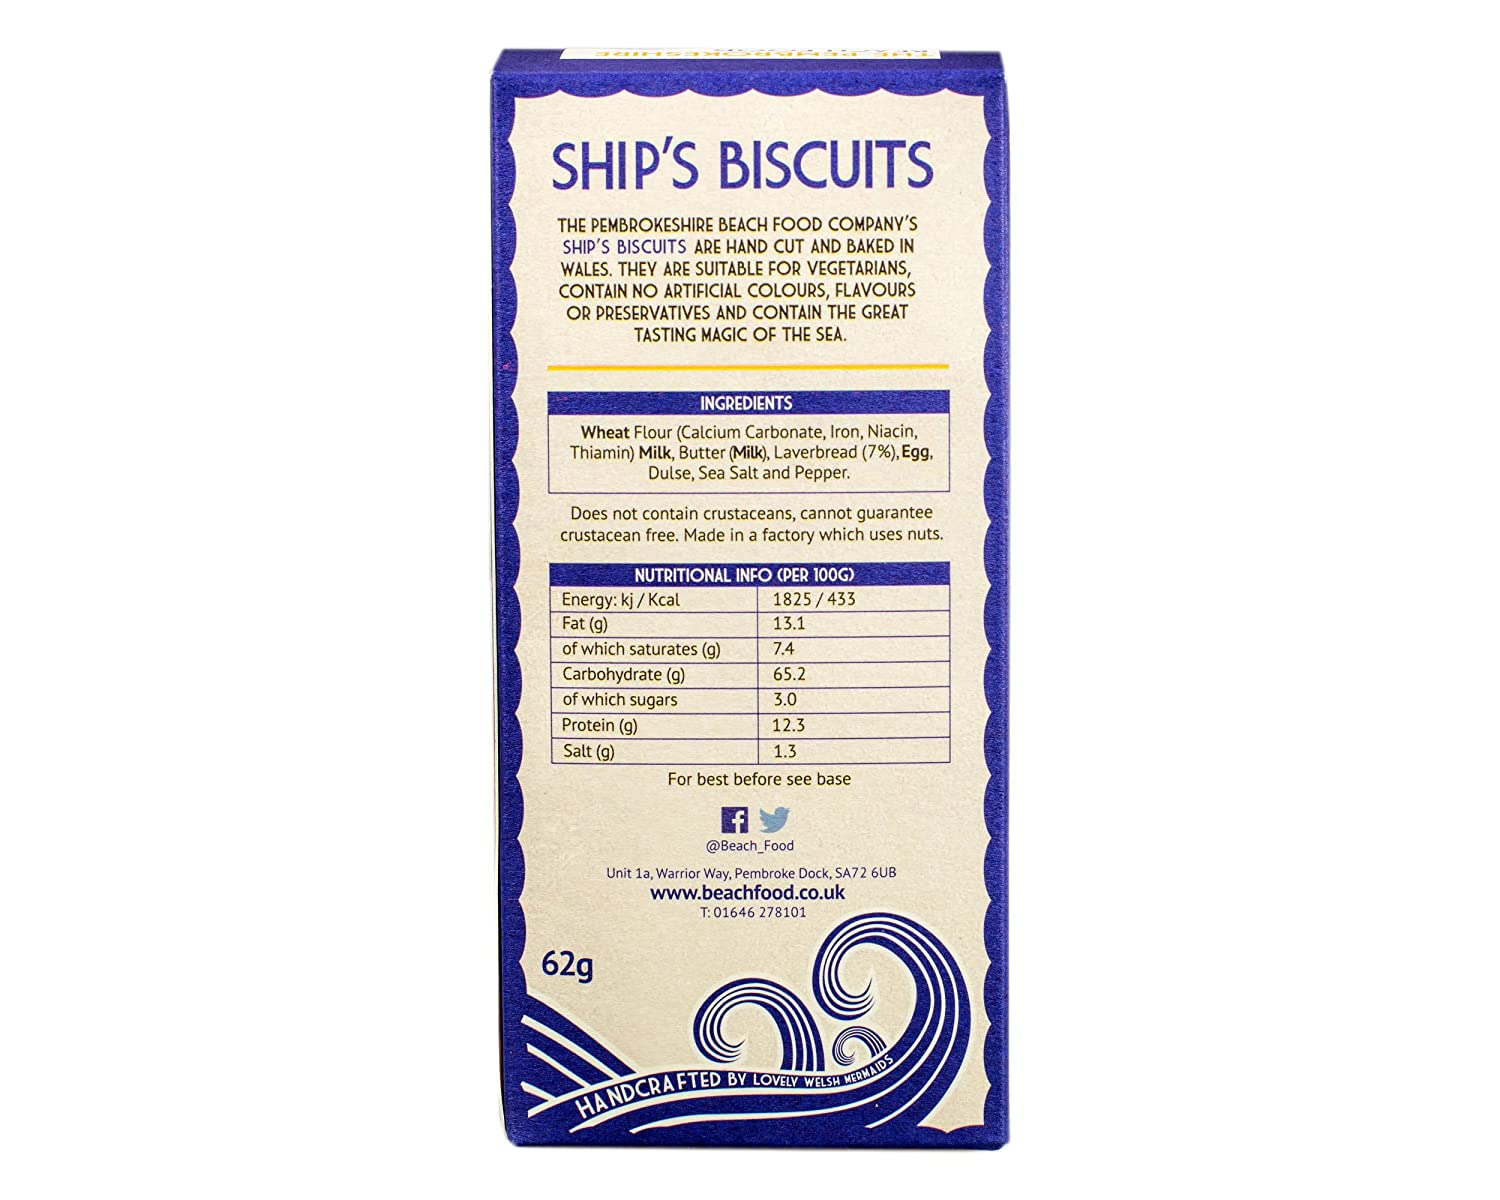 Ships Biscuits